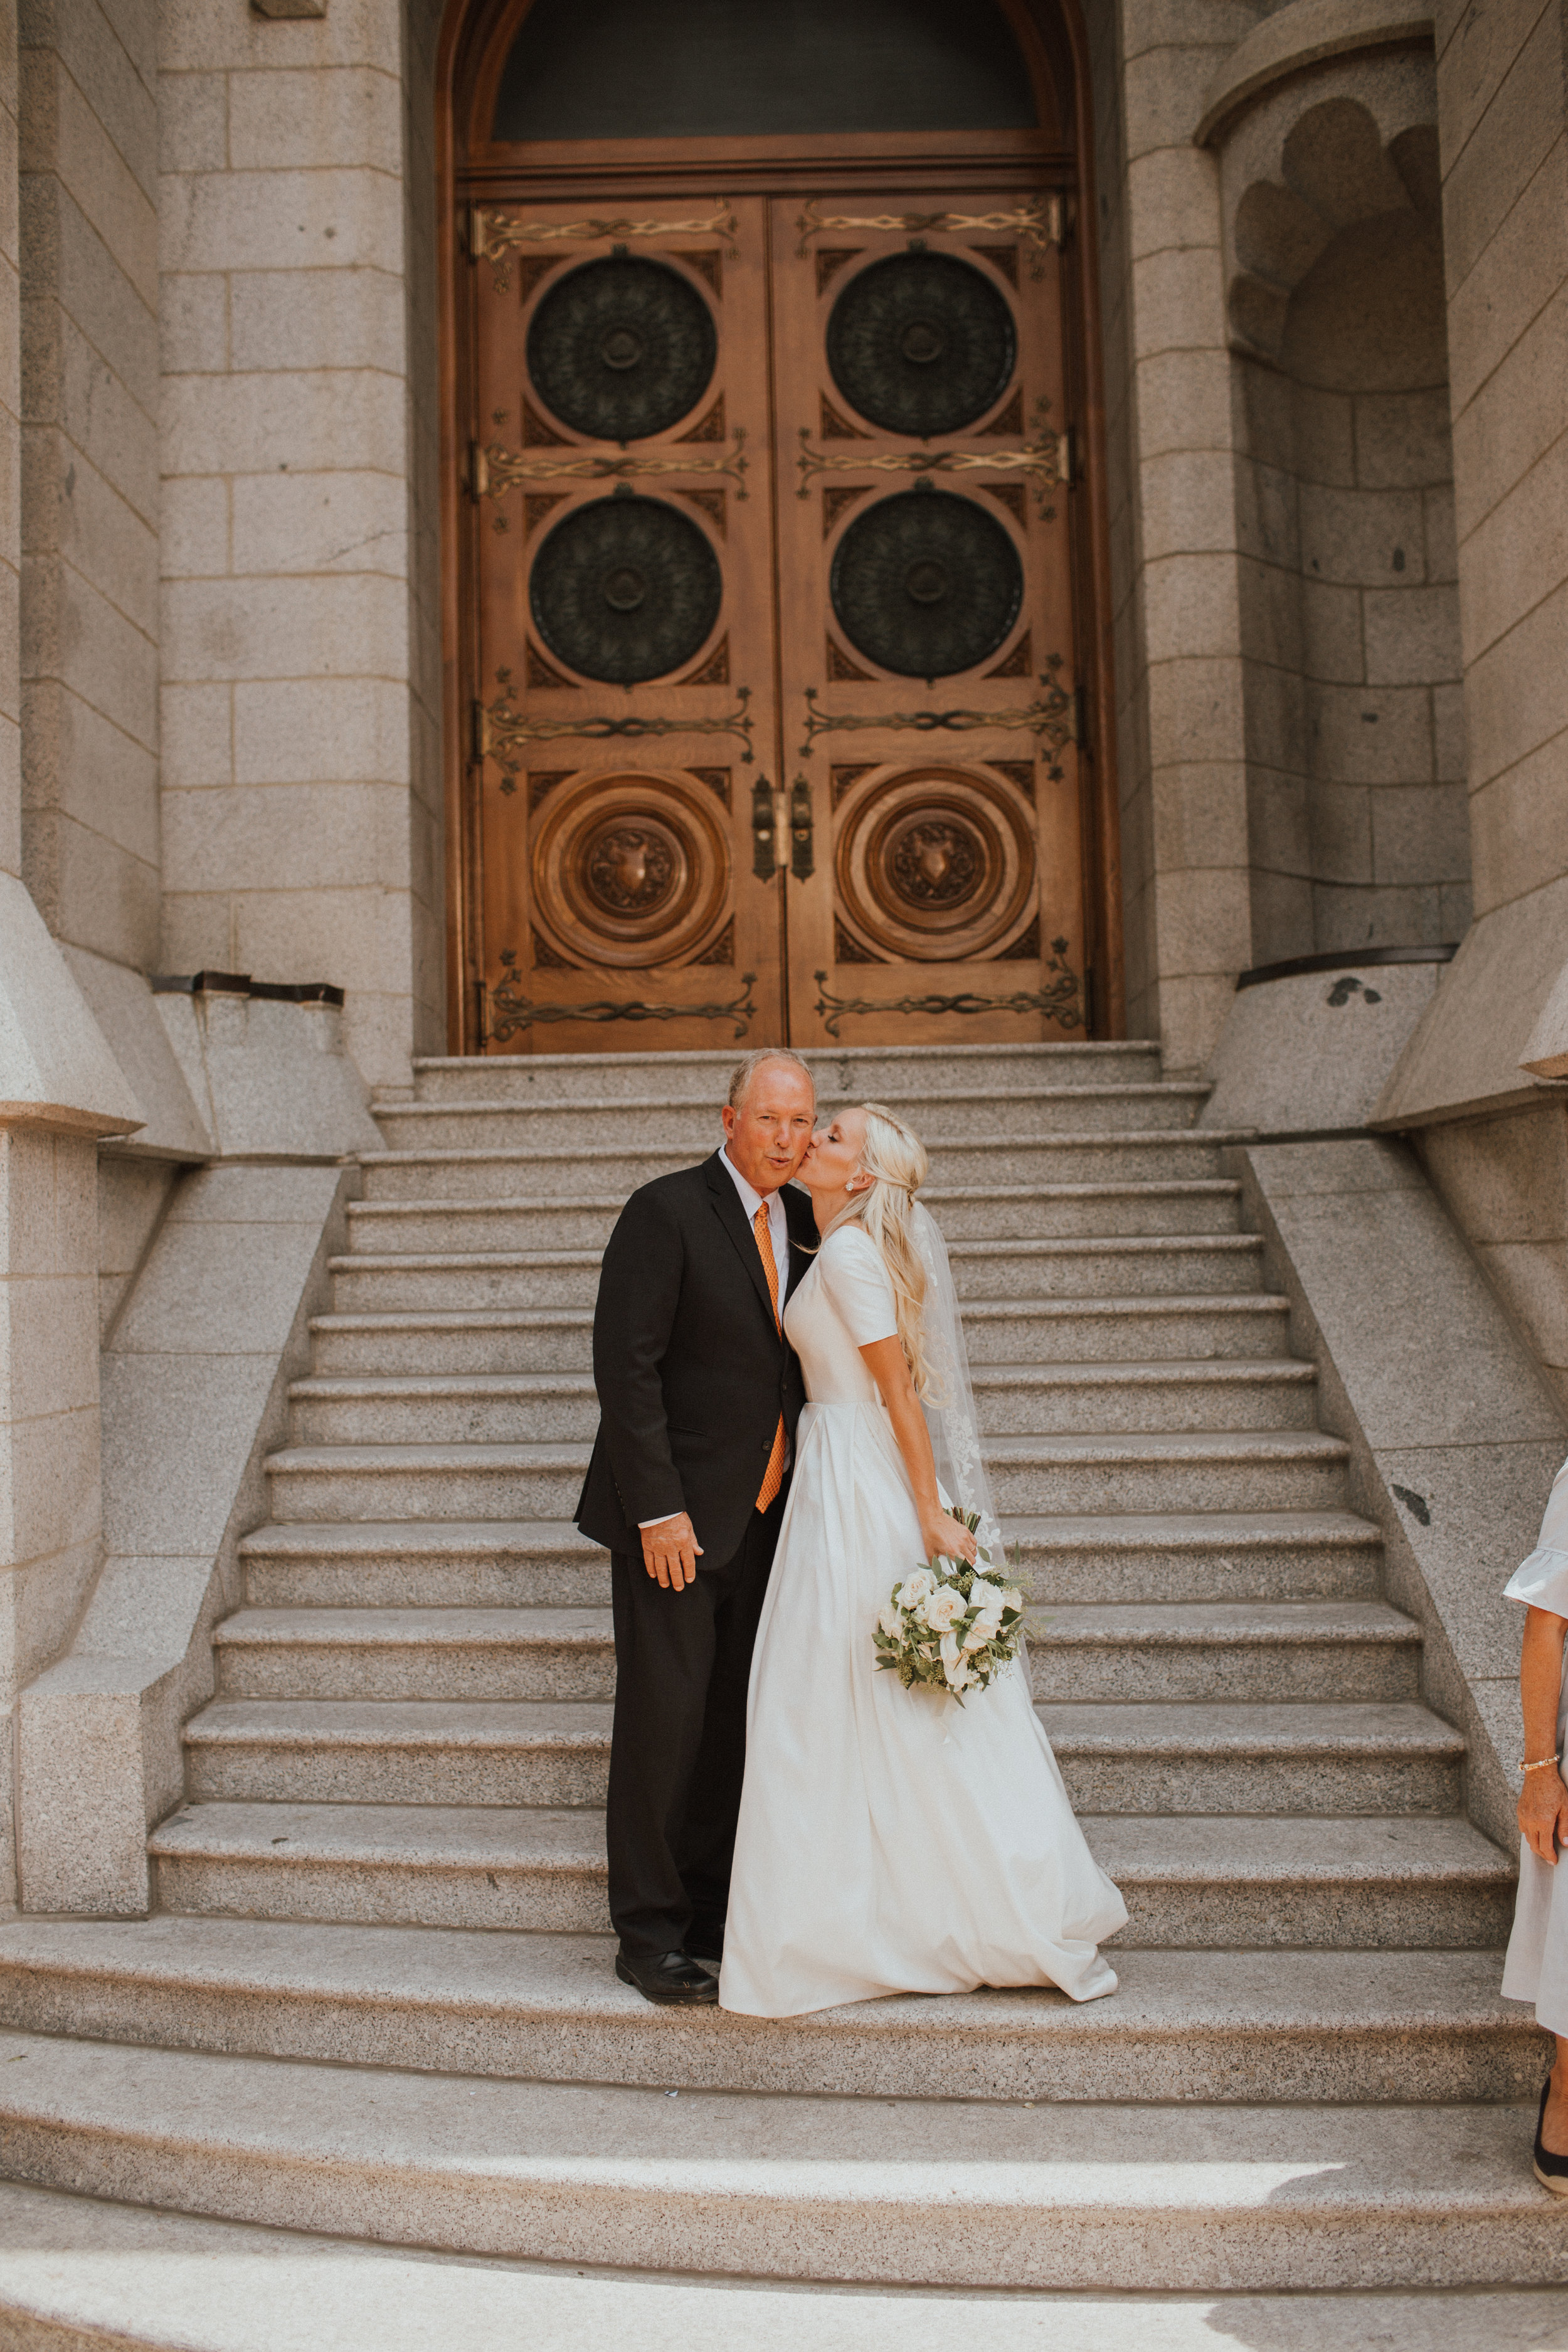 Natalie+Tanner-WeddingDay-51.jpg